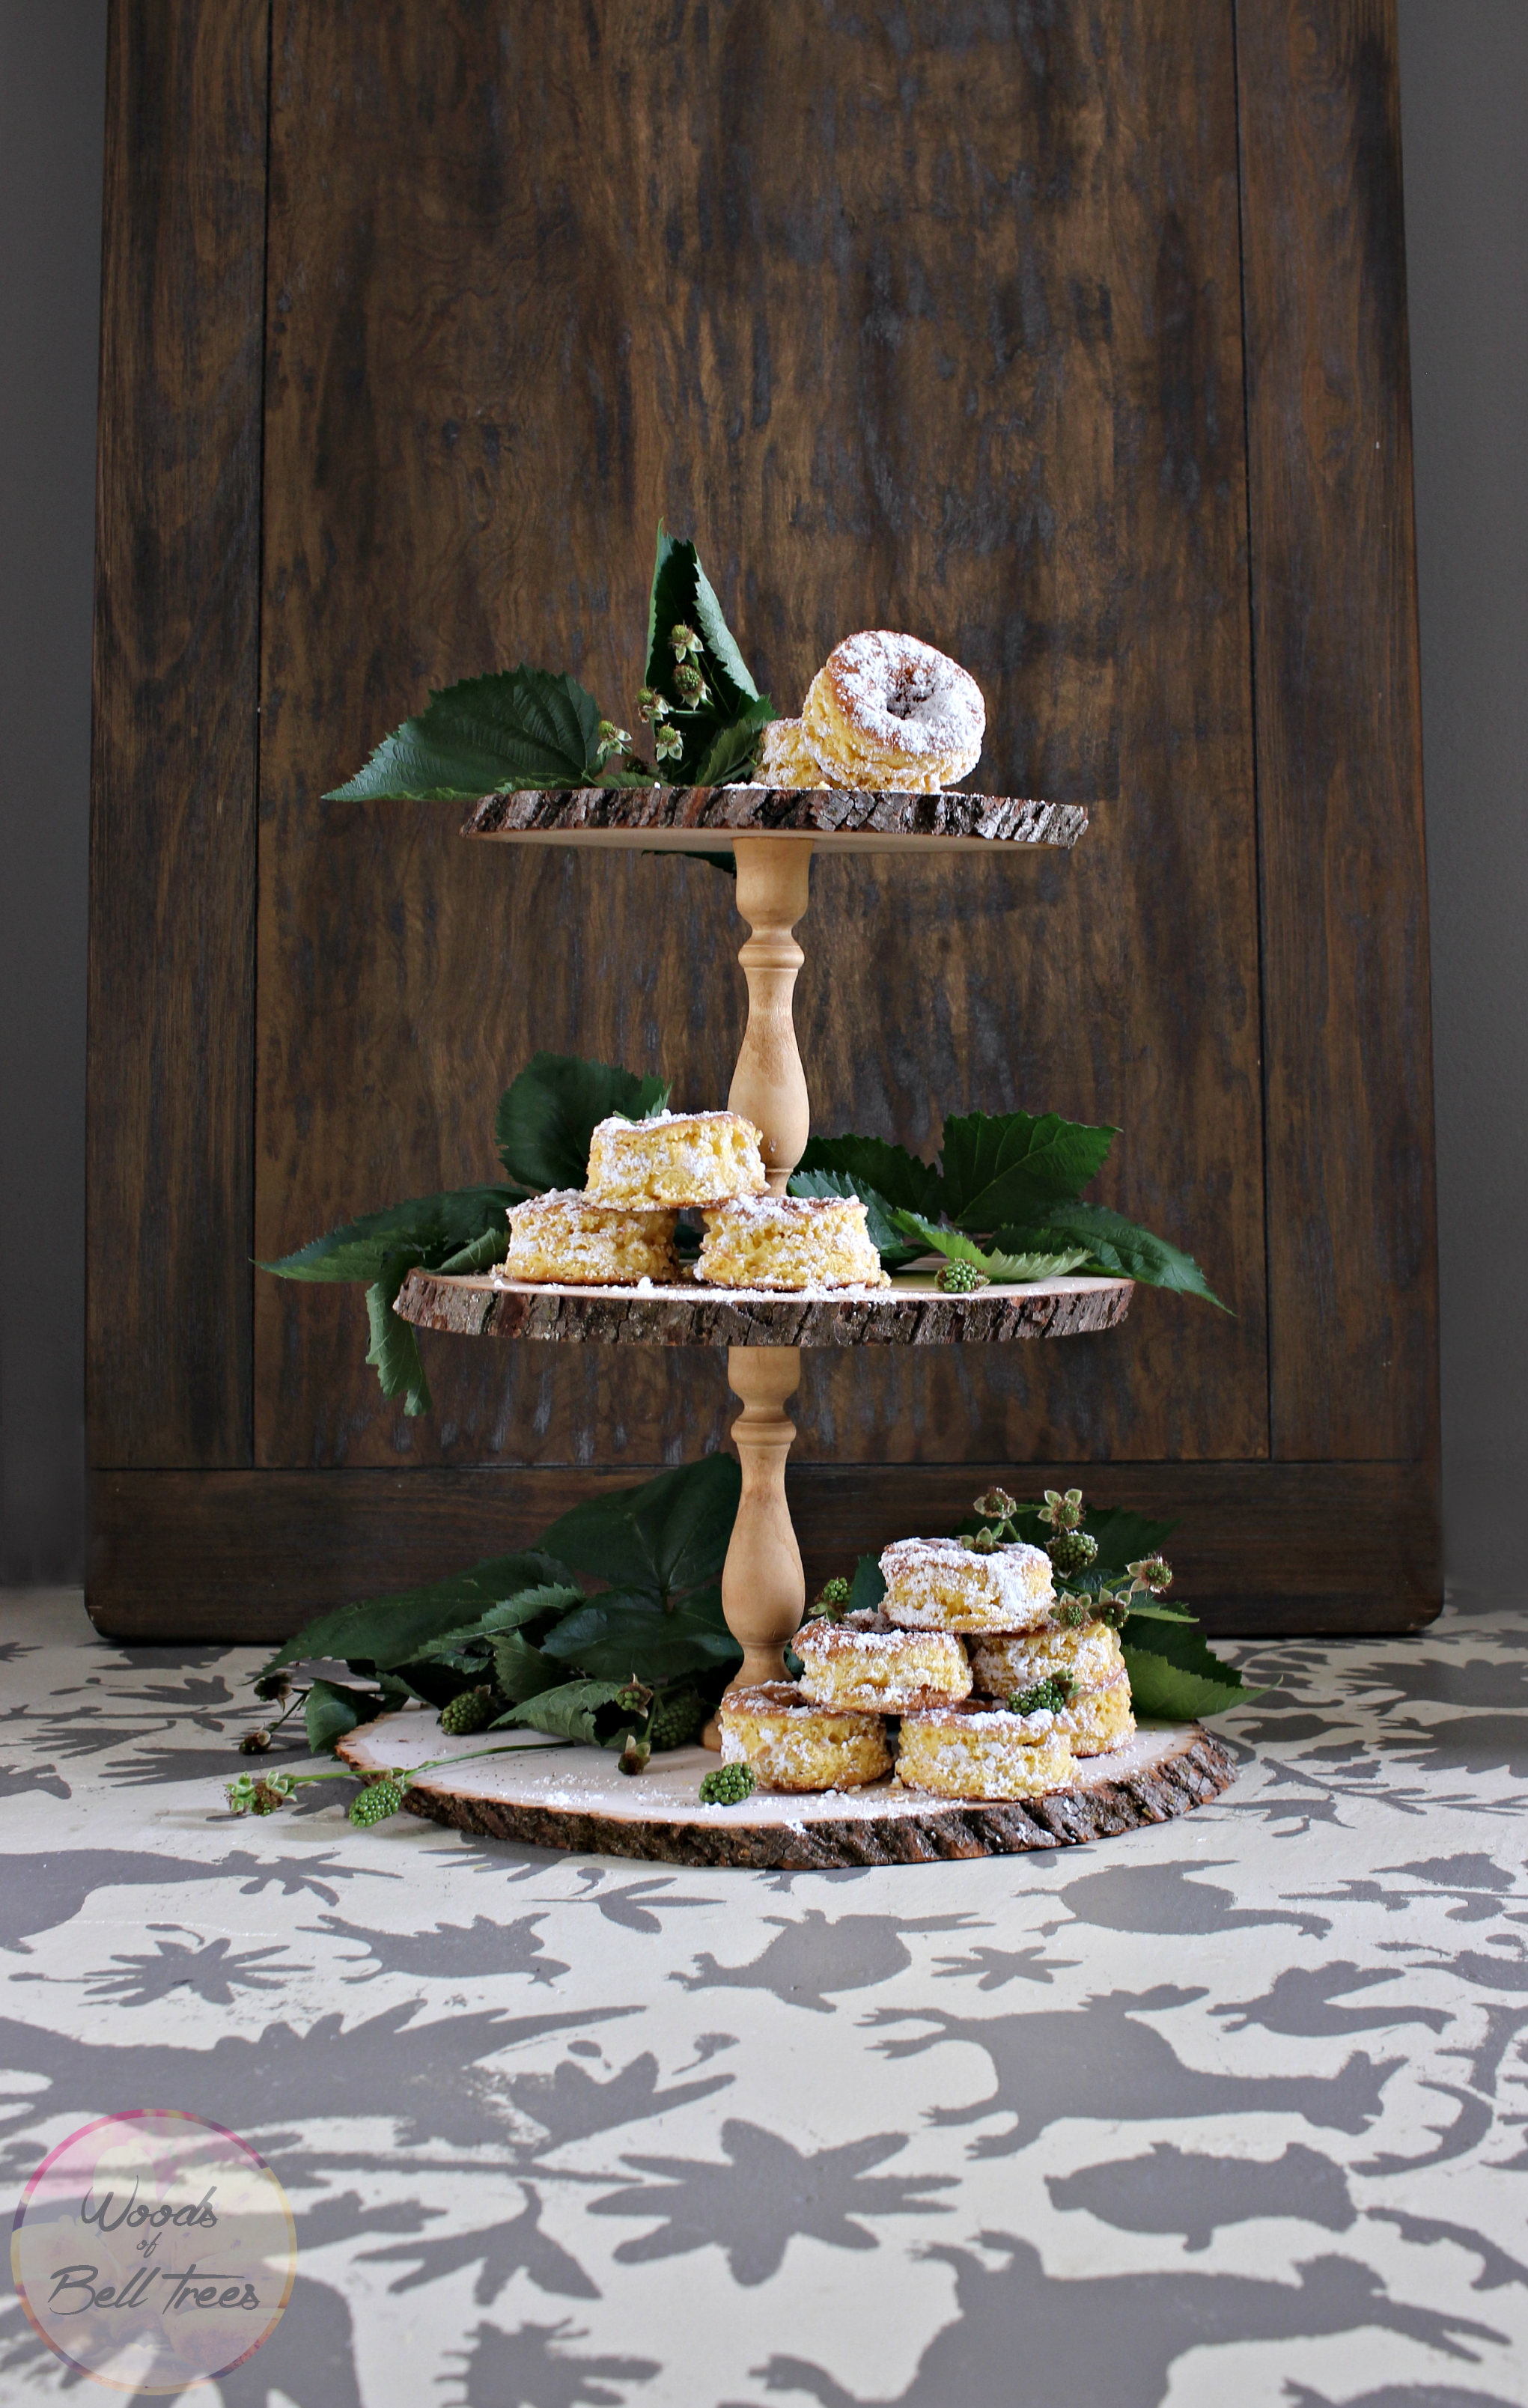 Craft A Diy Triple Tier Cake Stand Perfect For Mini Cakes Cupcakes Doughnuts And More This Very Simple Diy Cake Stand Wood Cake Stand Wood Slice Cake Stand